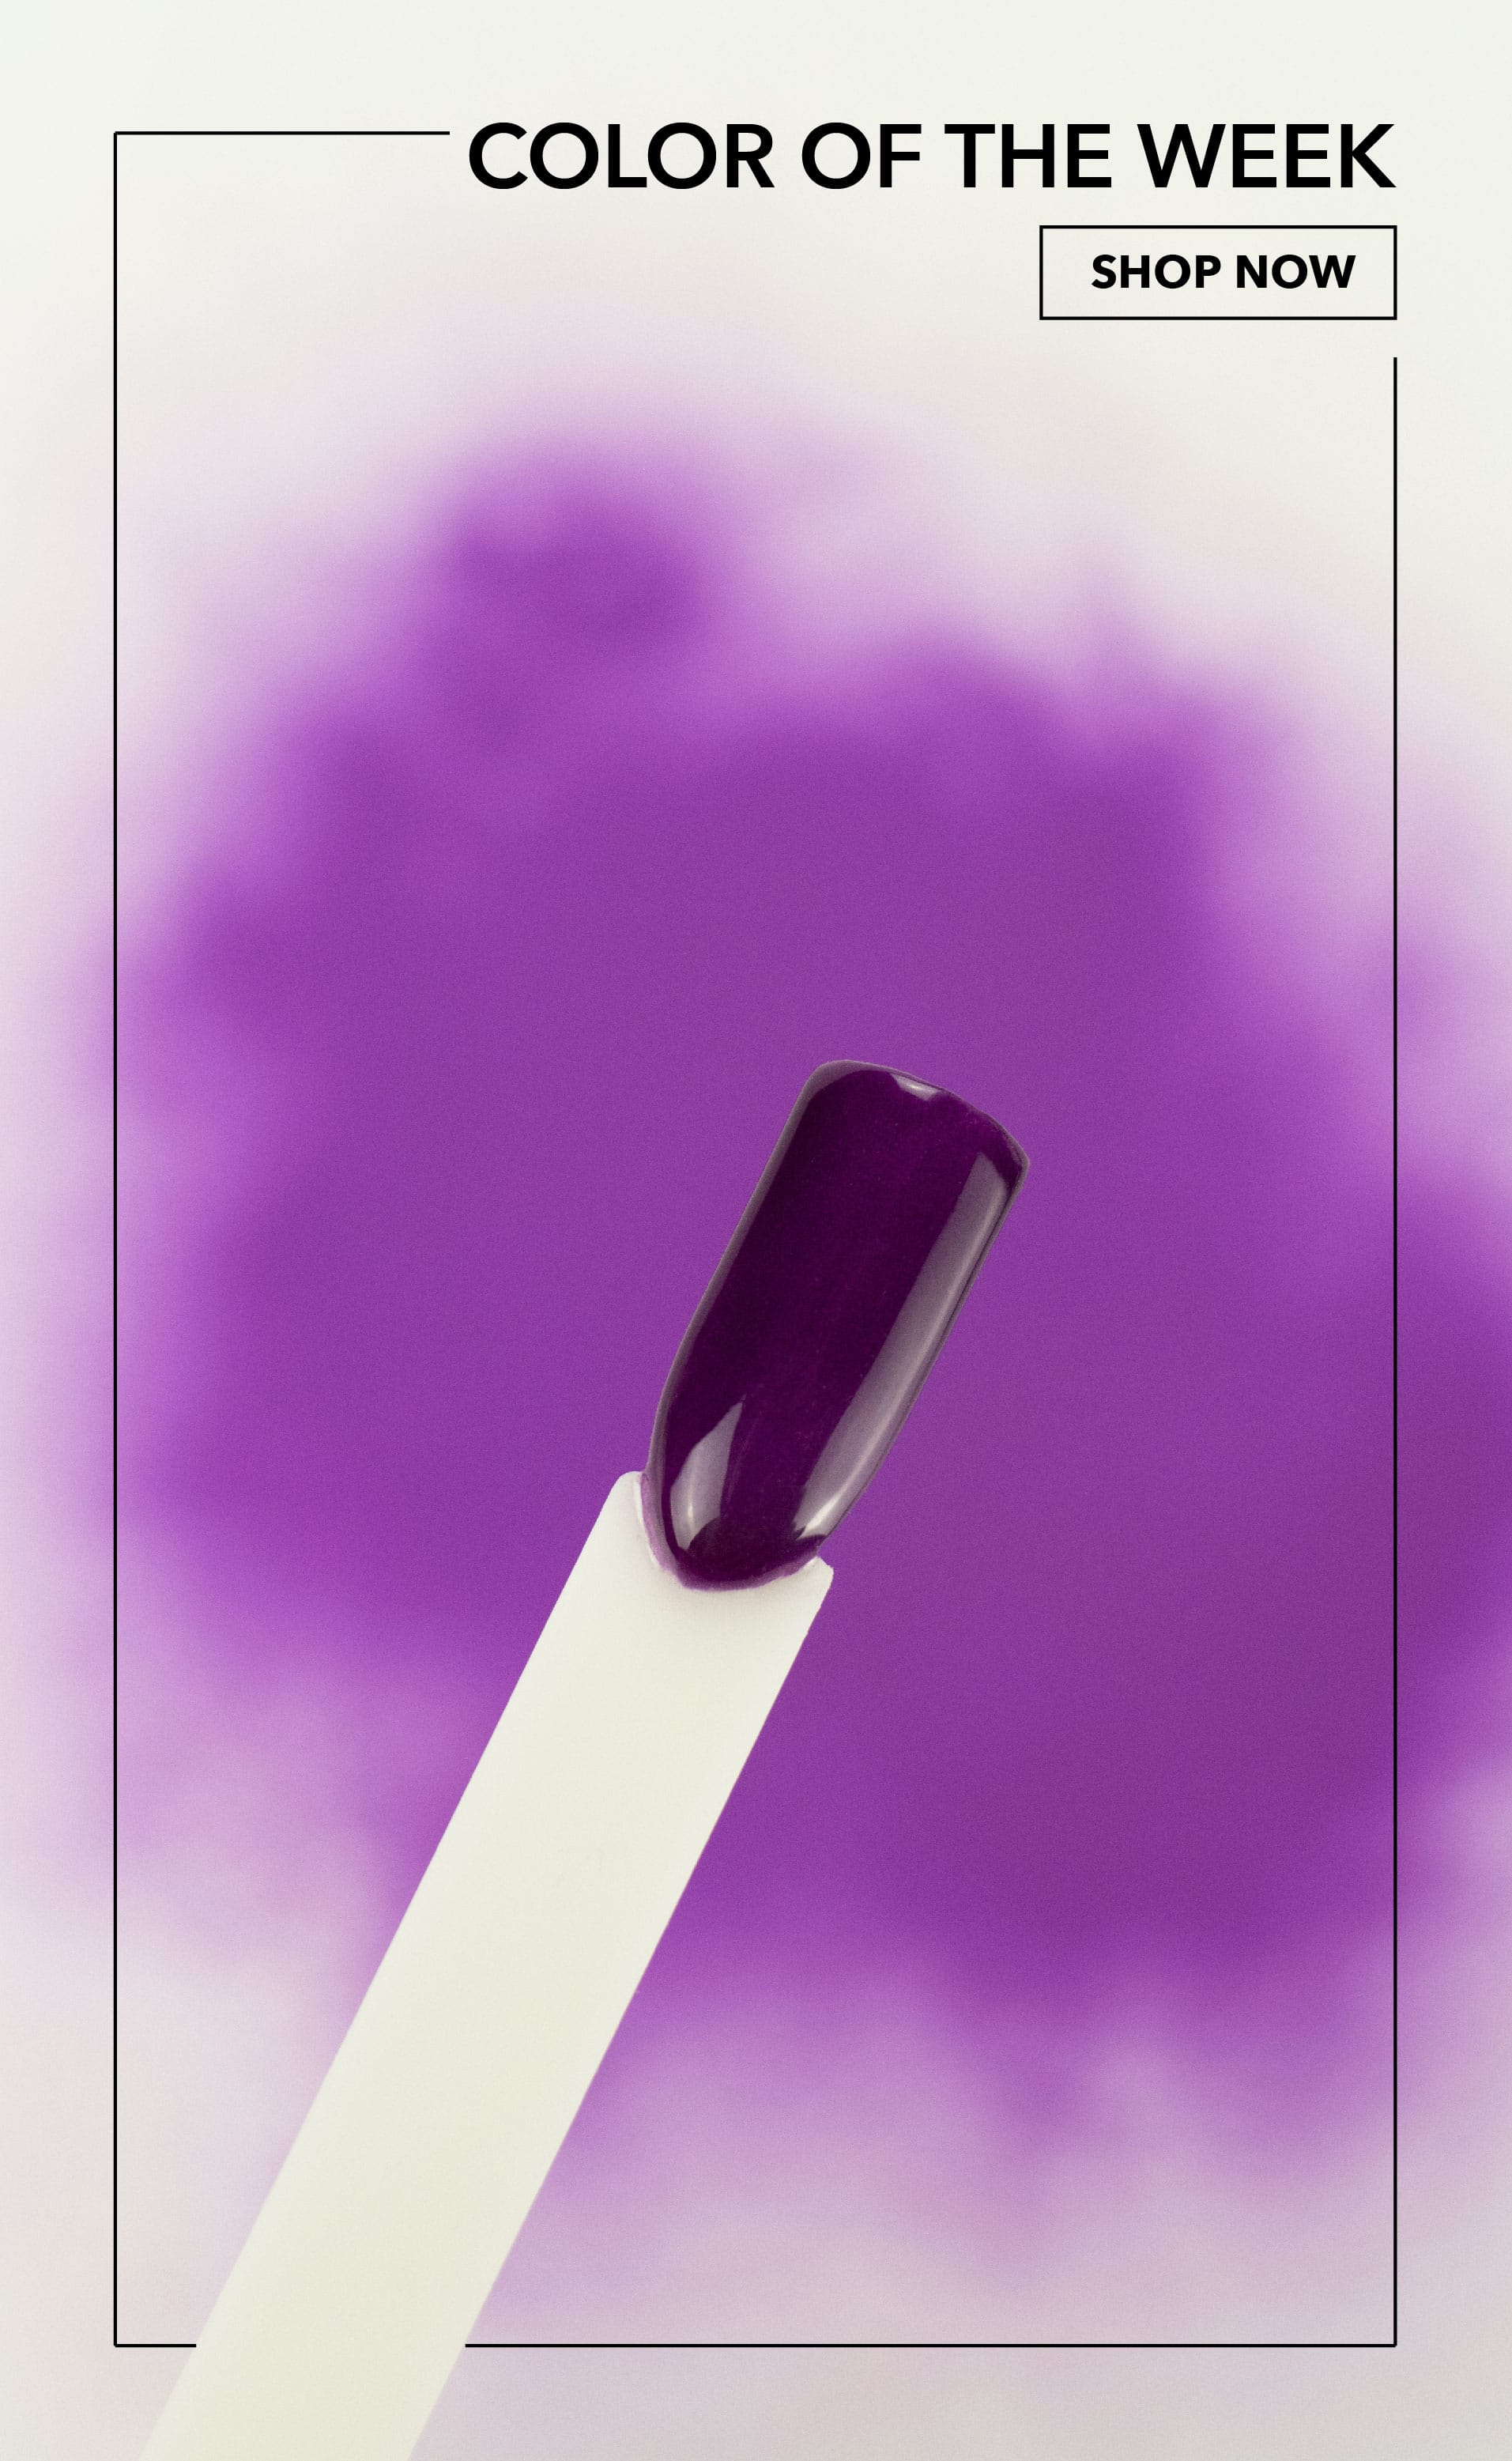 Swatch photo of Elderberry, deep plum purple dip powder, Revel Nail